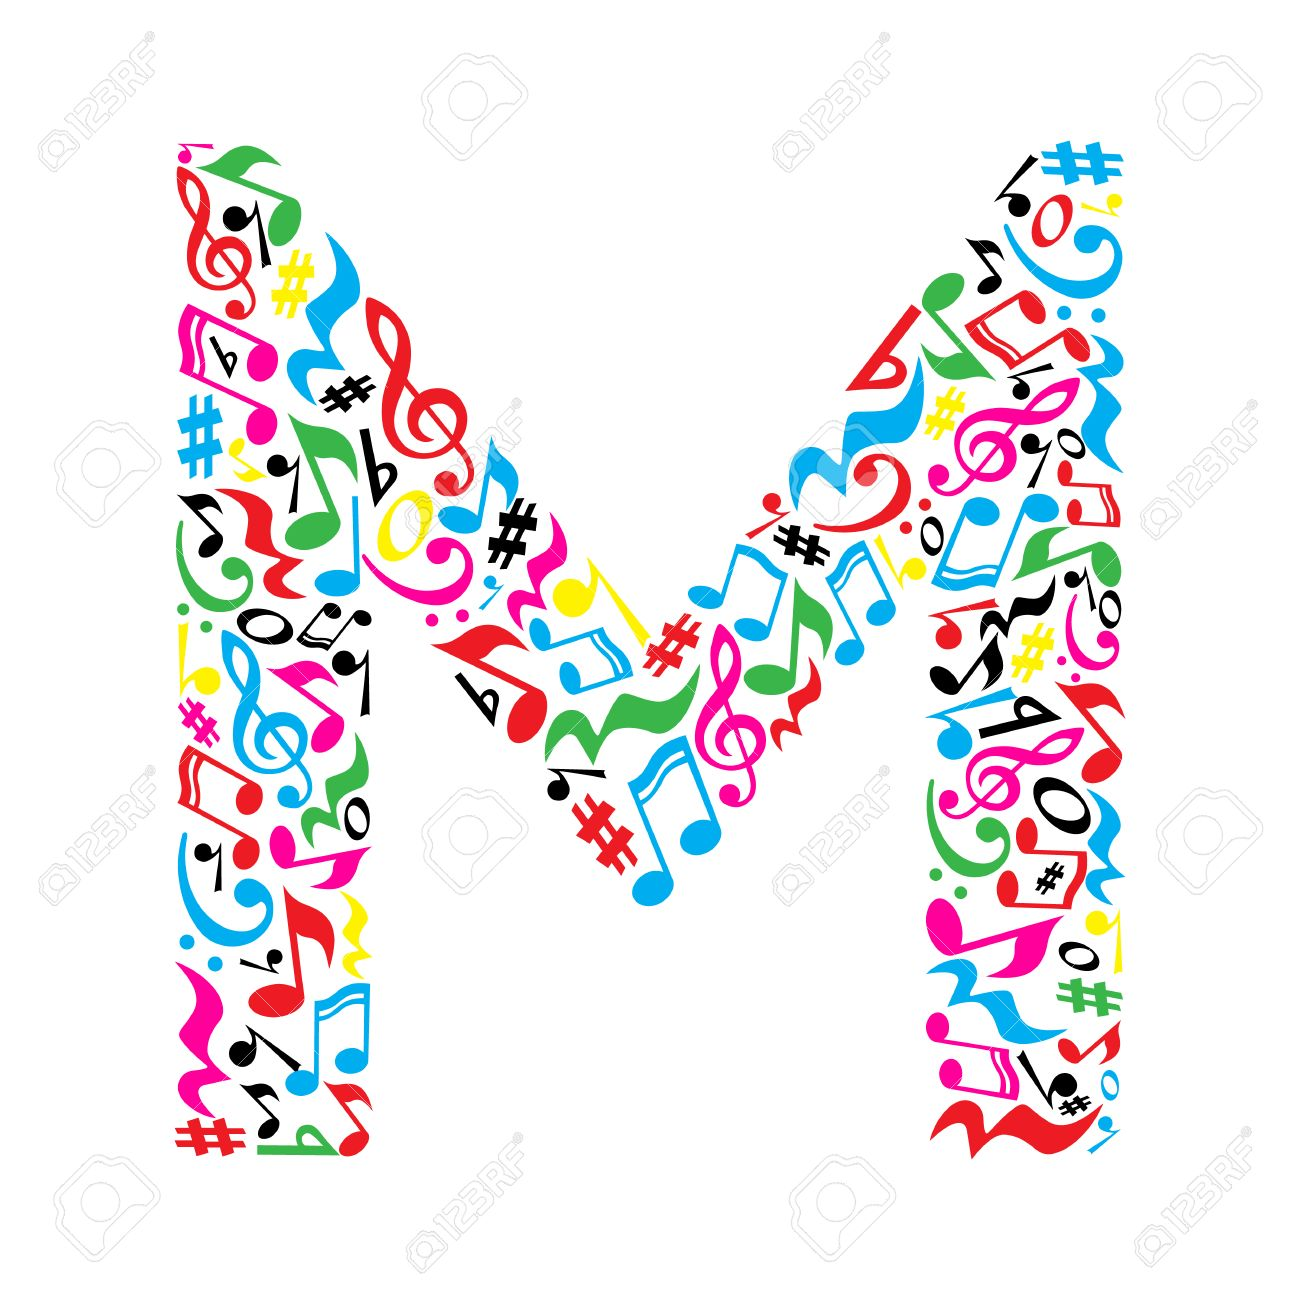 m letter made of colorful musical notes on white background